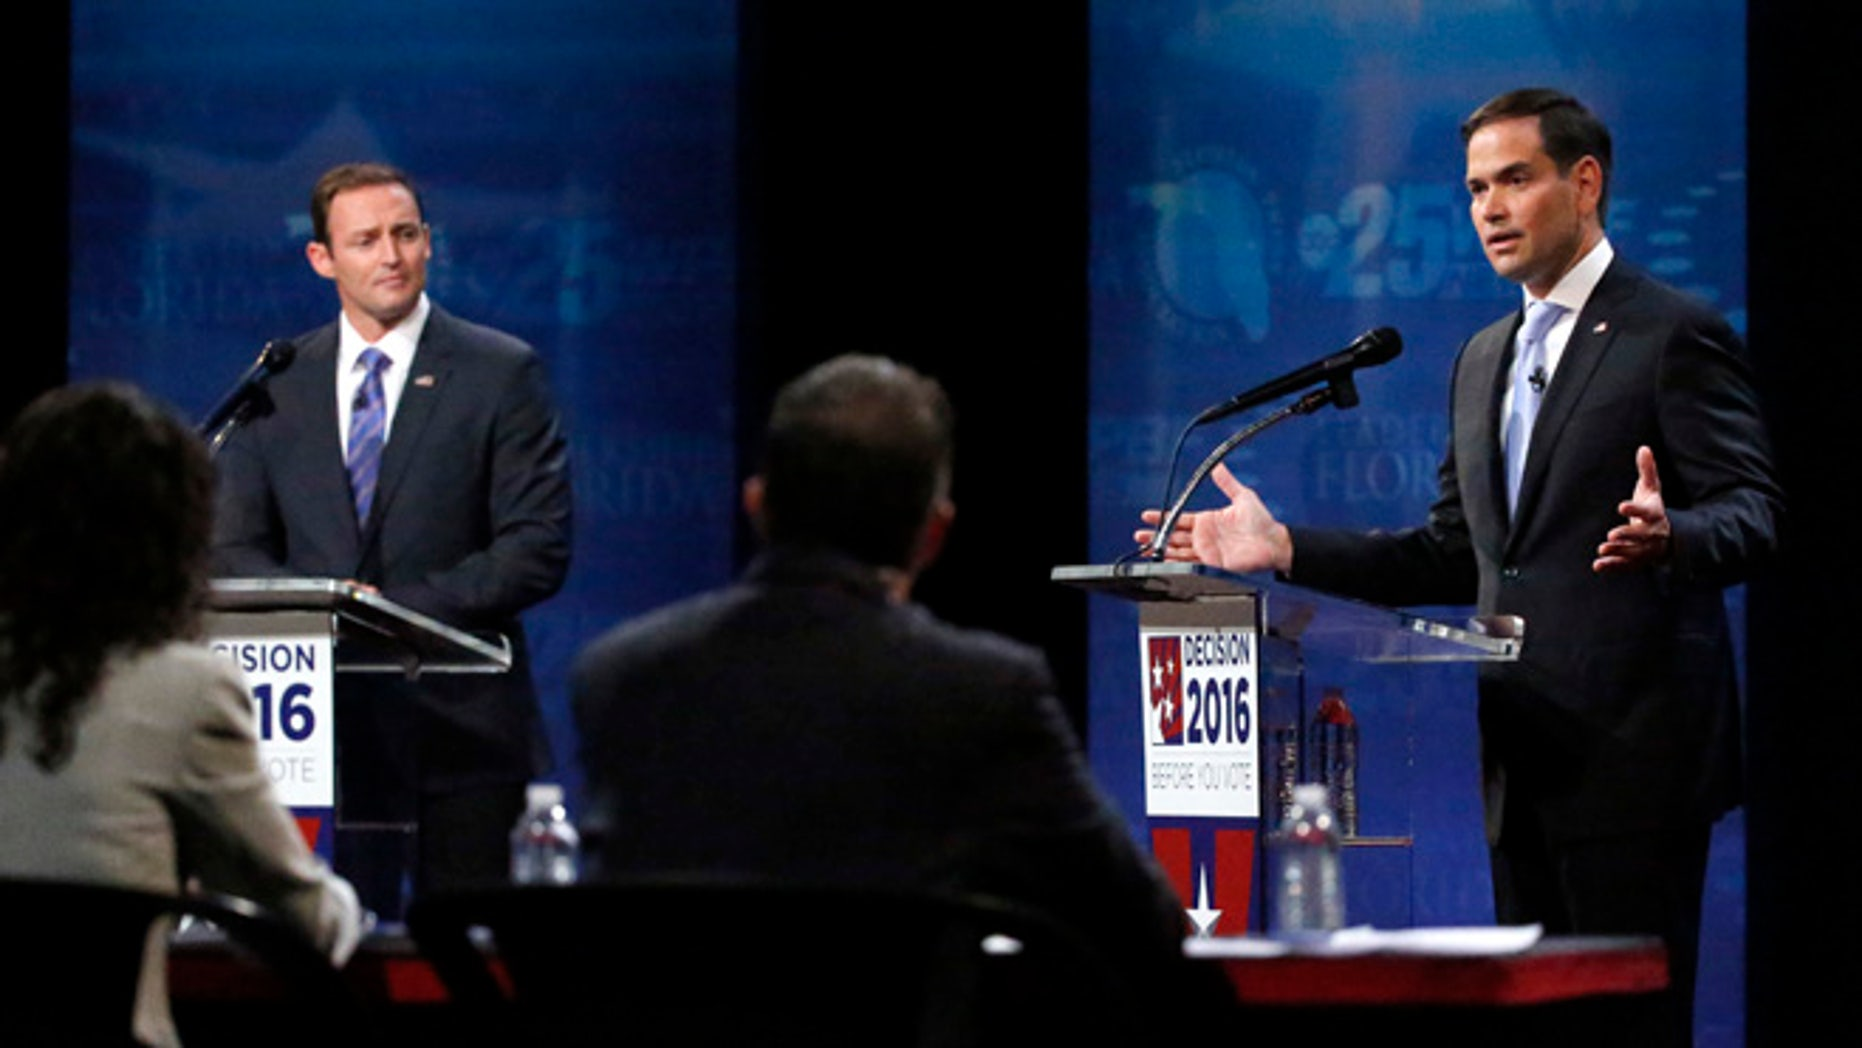 Sen. Marco Rubio and Rep. Patrick Murphy during a debate, Wednesday, Oct. 26, 2016, at Broward College in Davie, Fla.